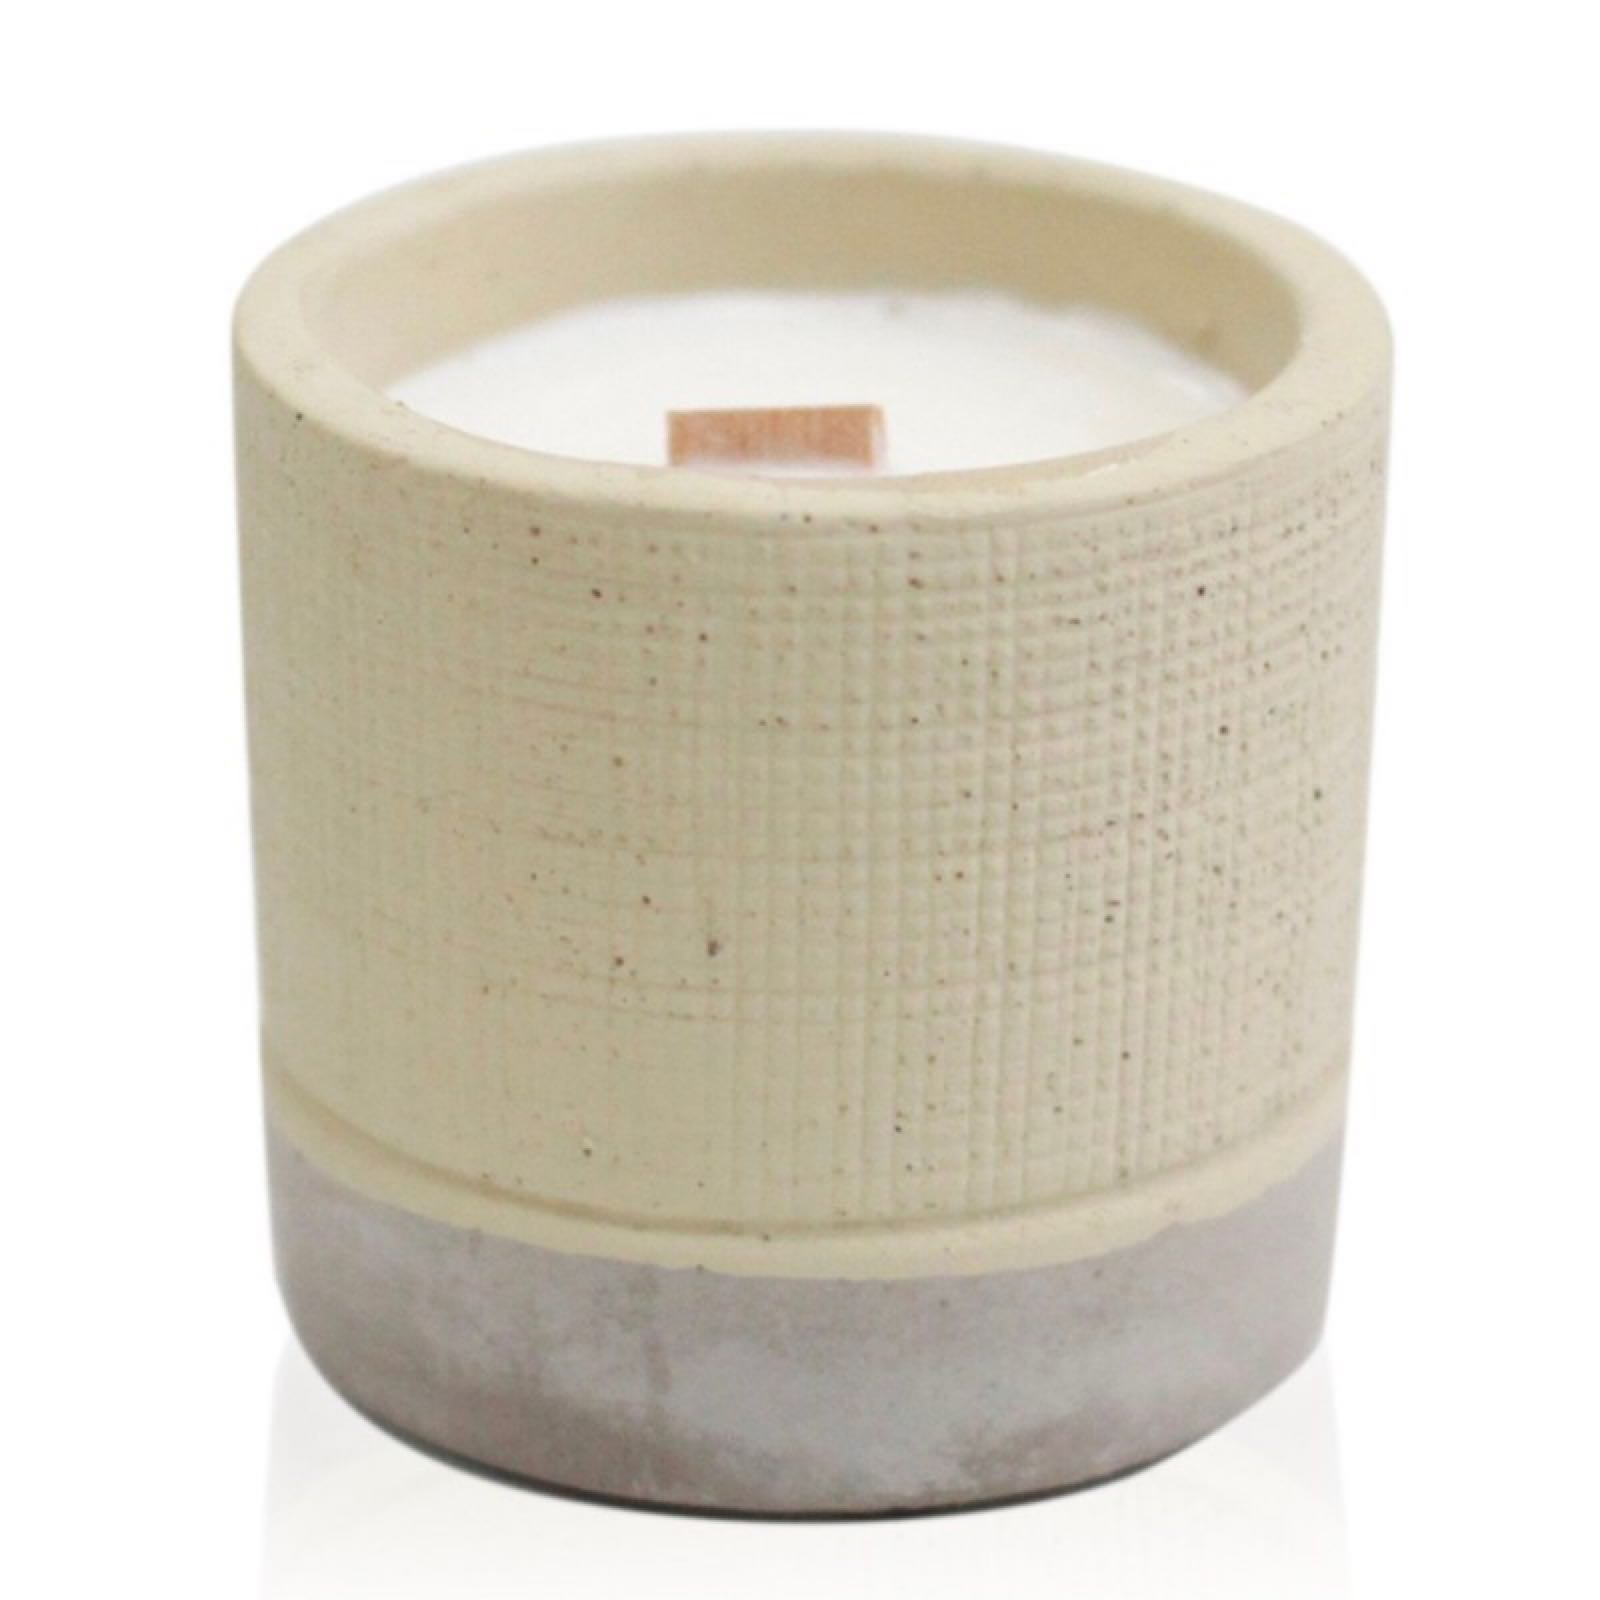 'Coffee in the Club' Concrete Candle (Was £8.75)